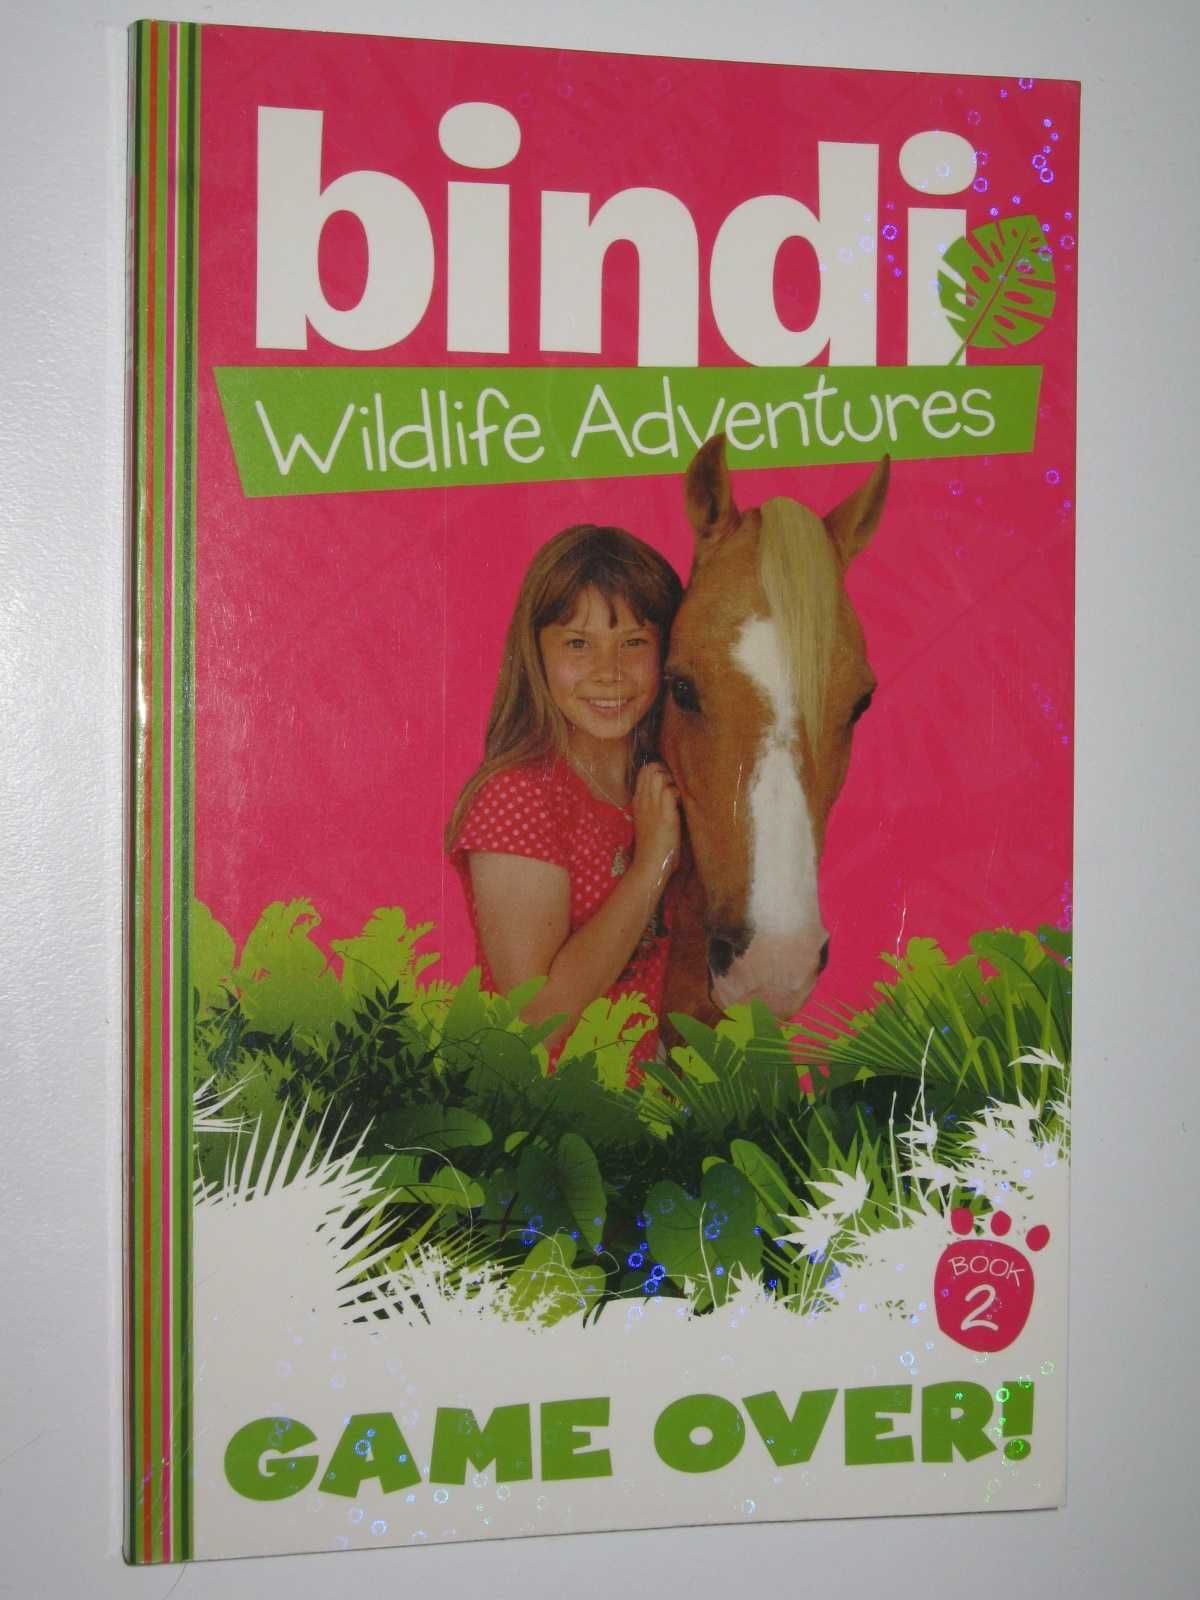 Game Over! - Bindi Wildlife Adventures #2, Black, Jesse